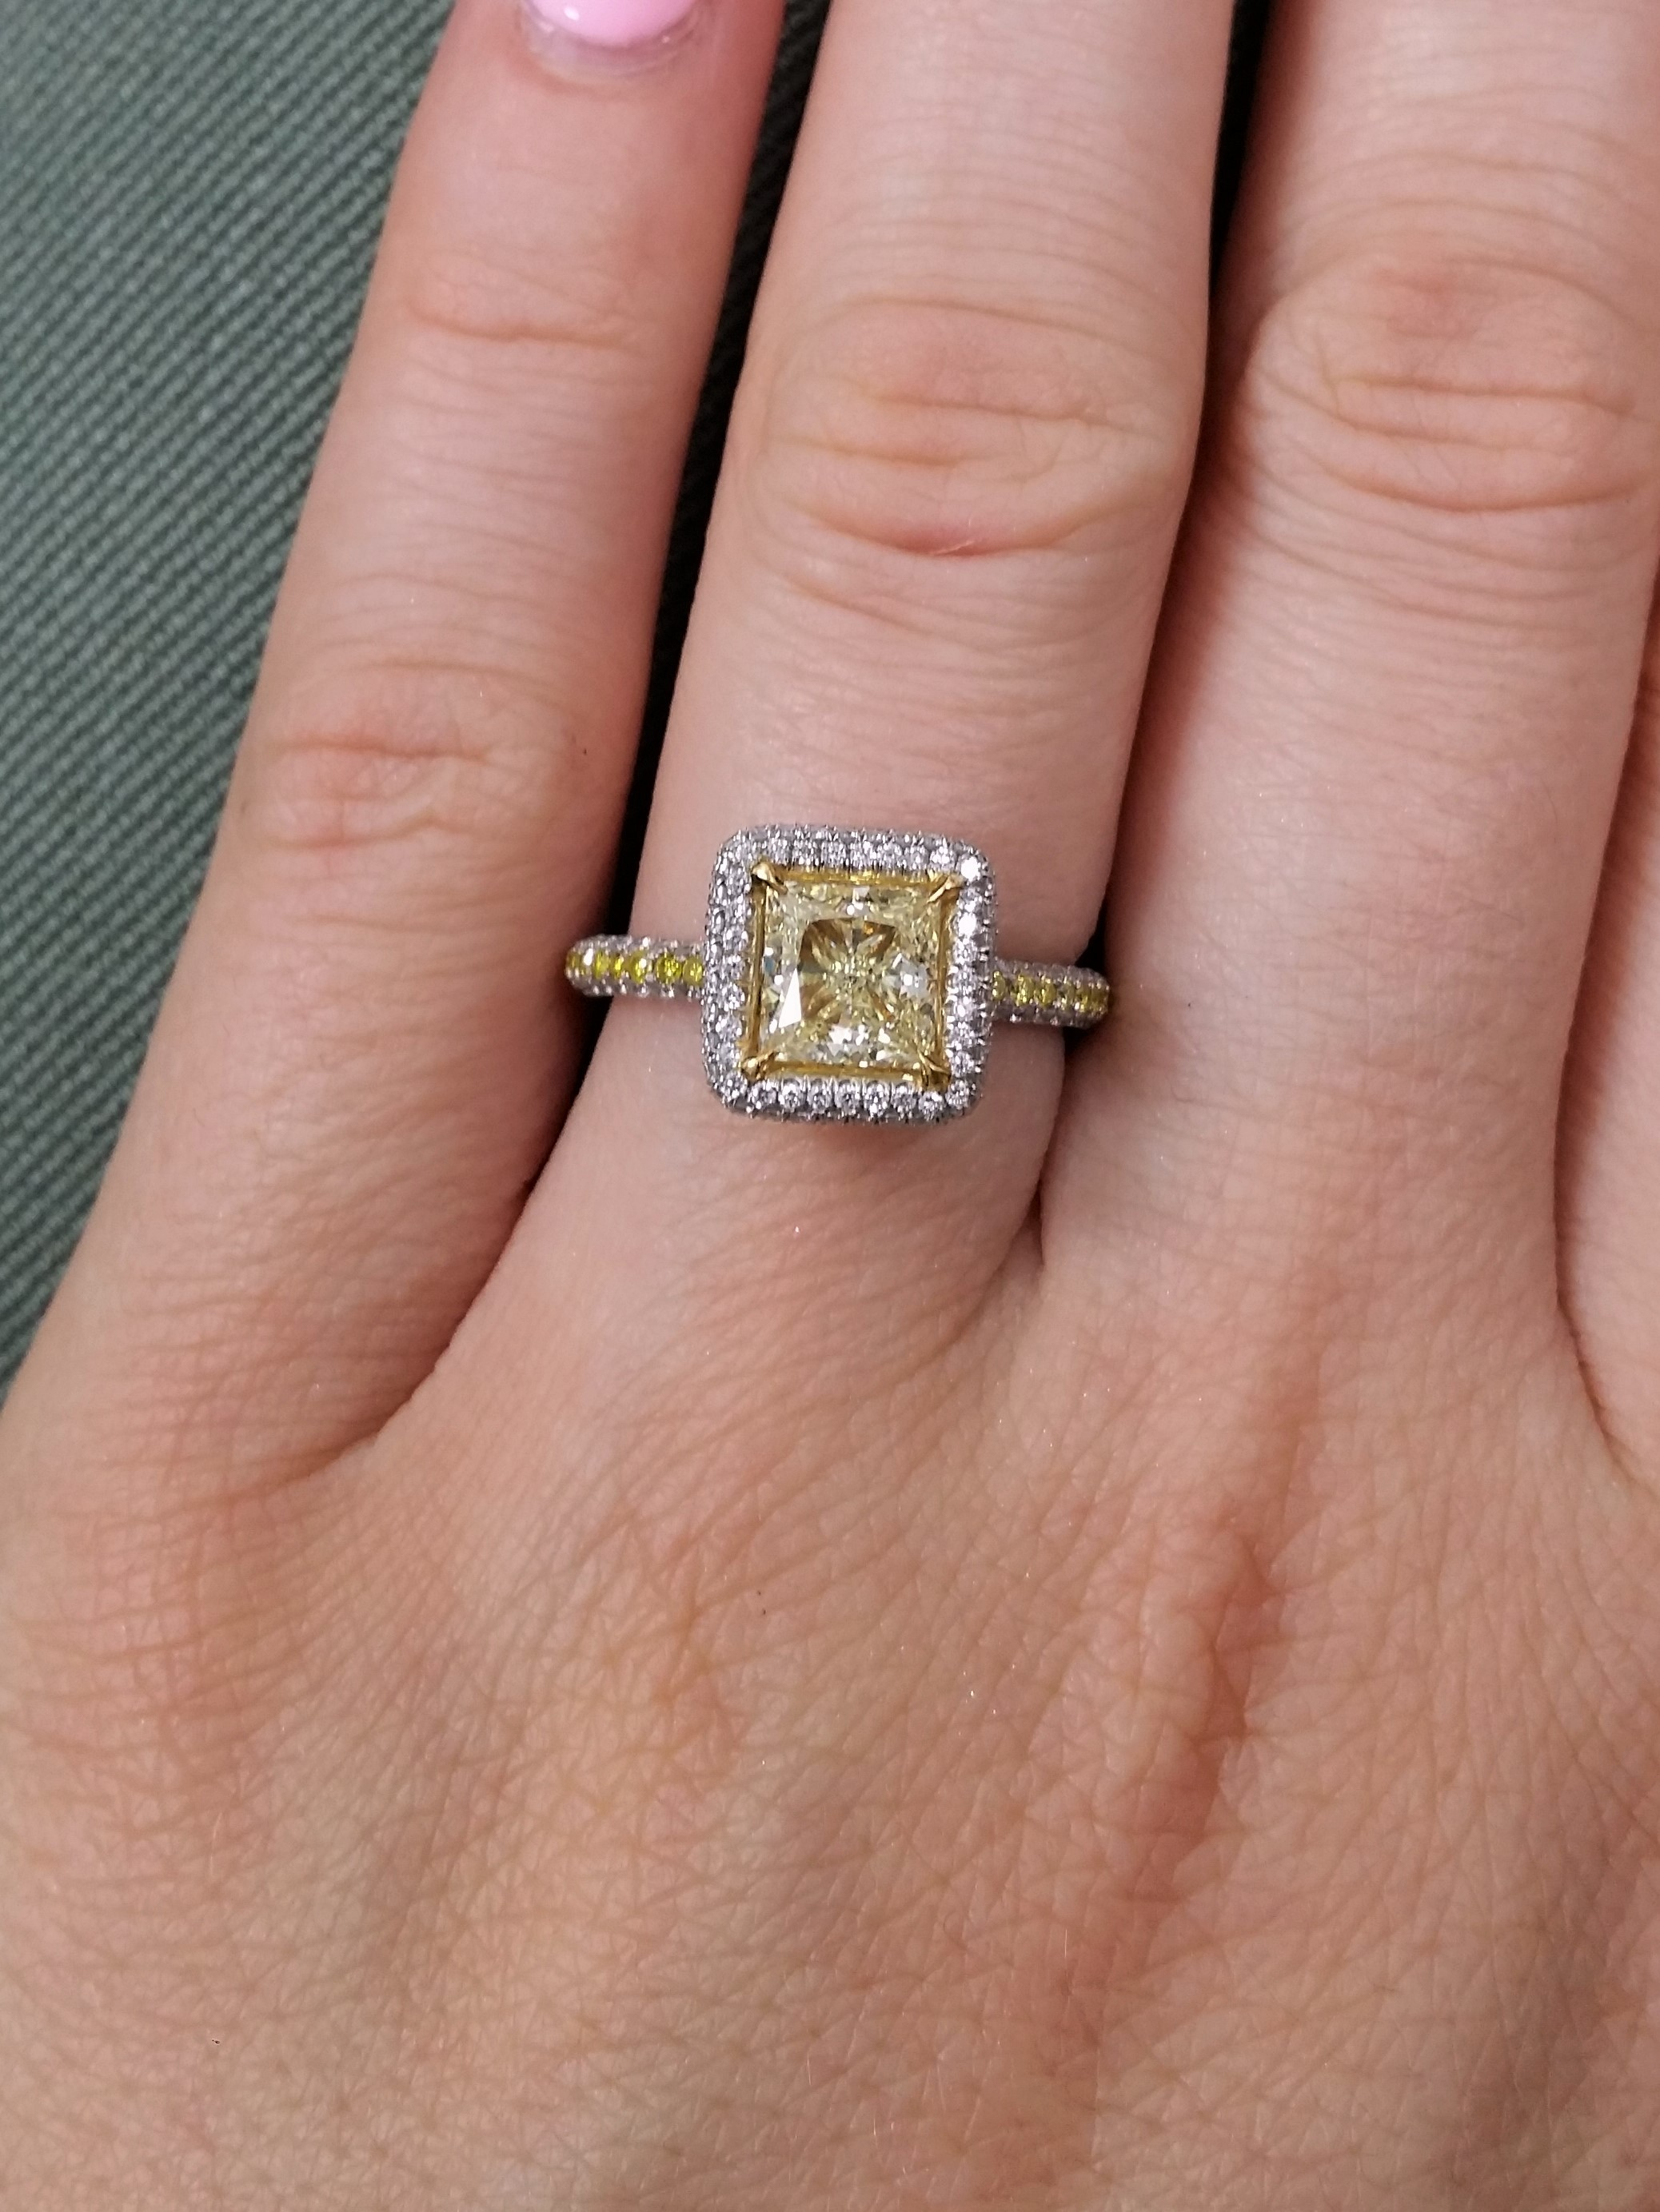 Gorgeous GIA certified 1.16cts princes cut fancy yellow diamond ring